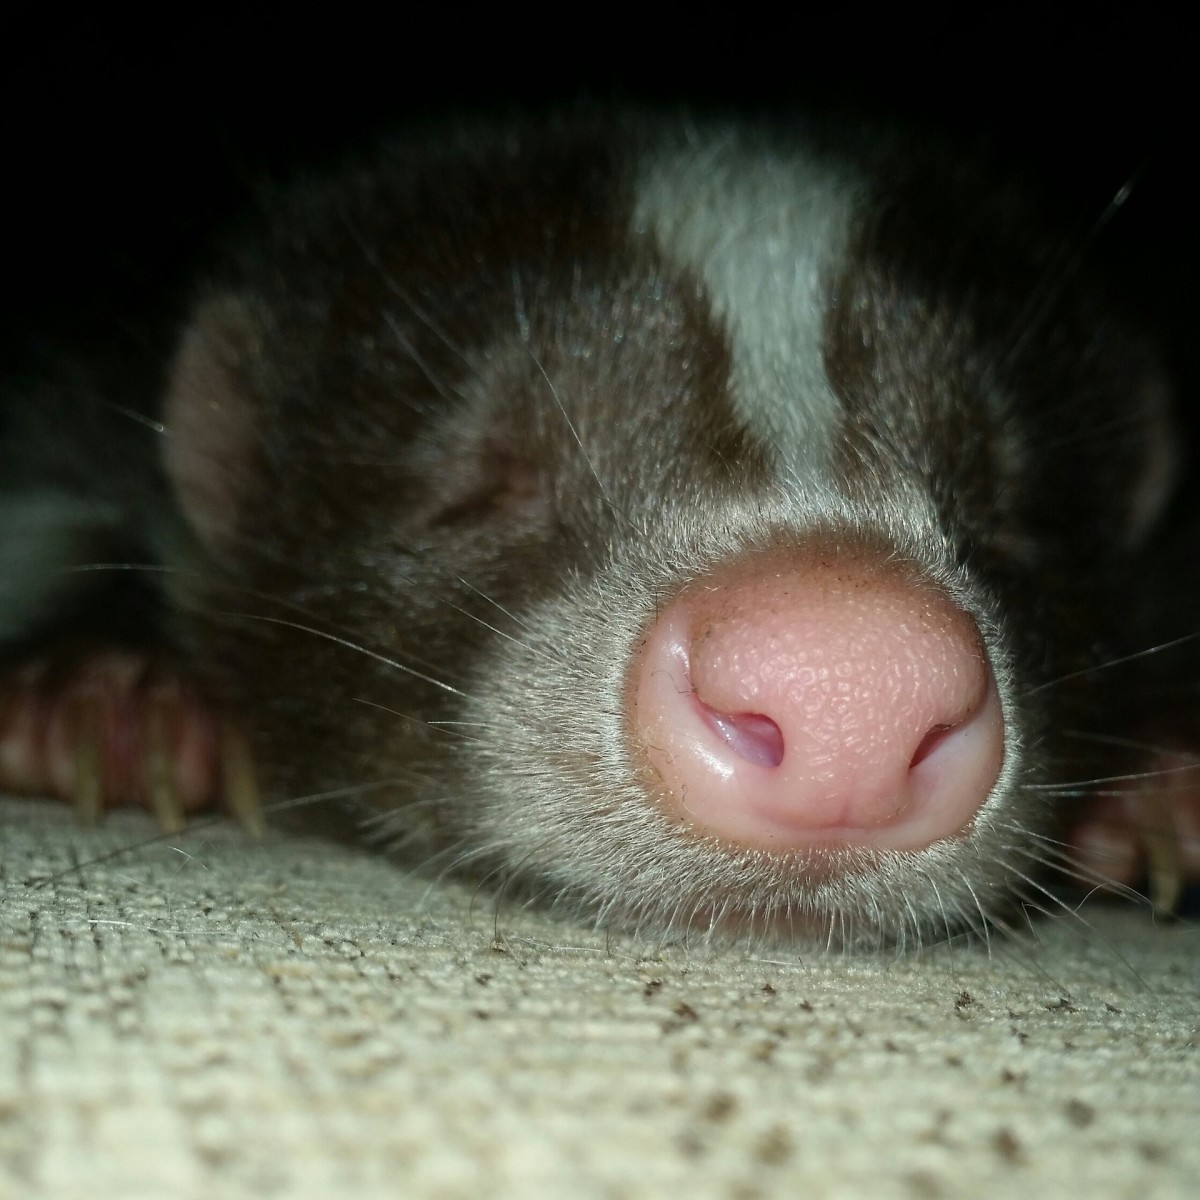 Much like dogs and cats, skunks can become quite fond of snuggling up with their owners.